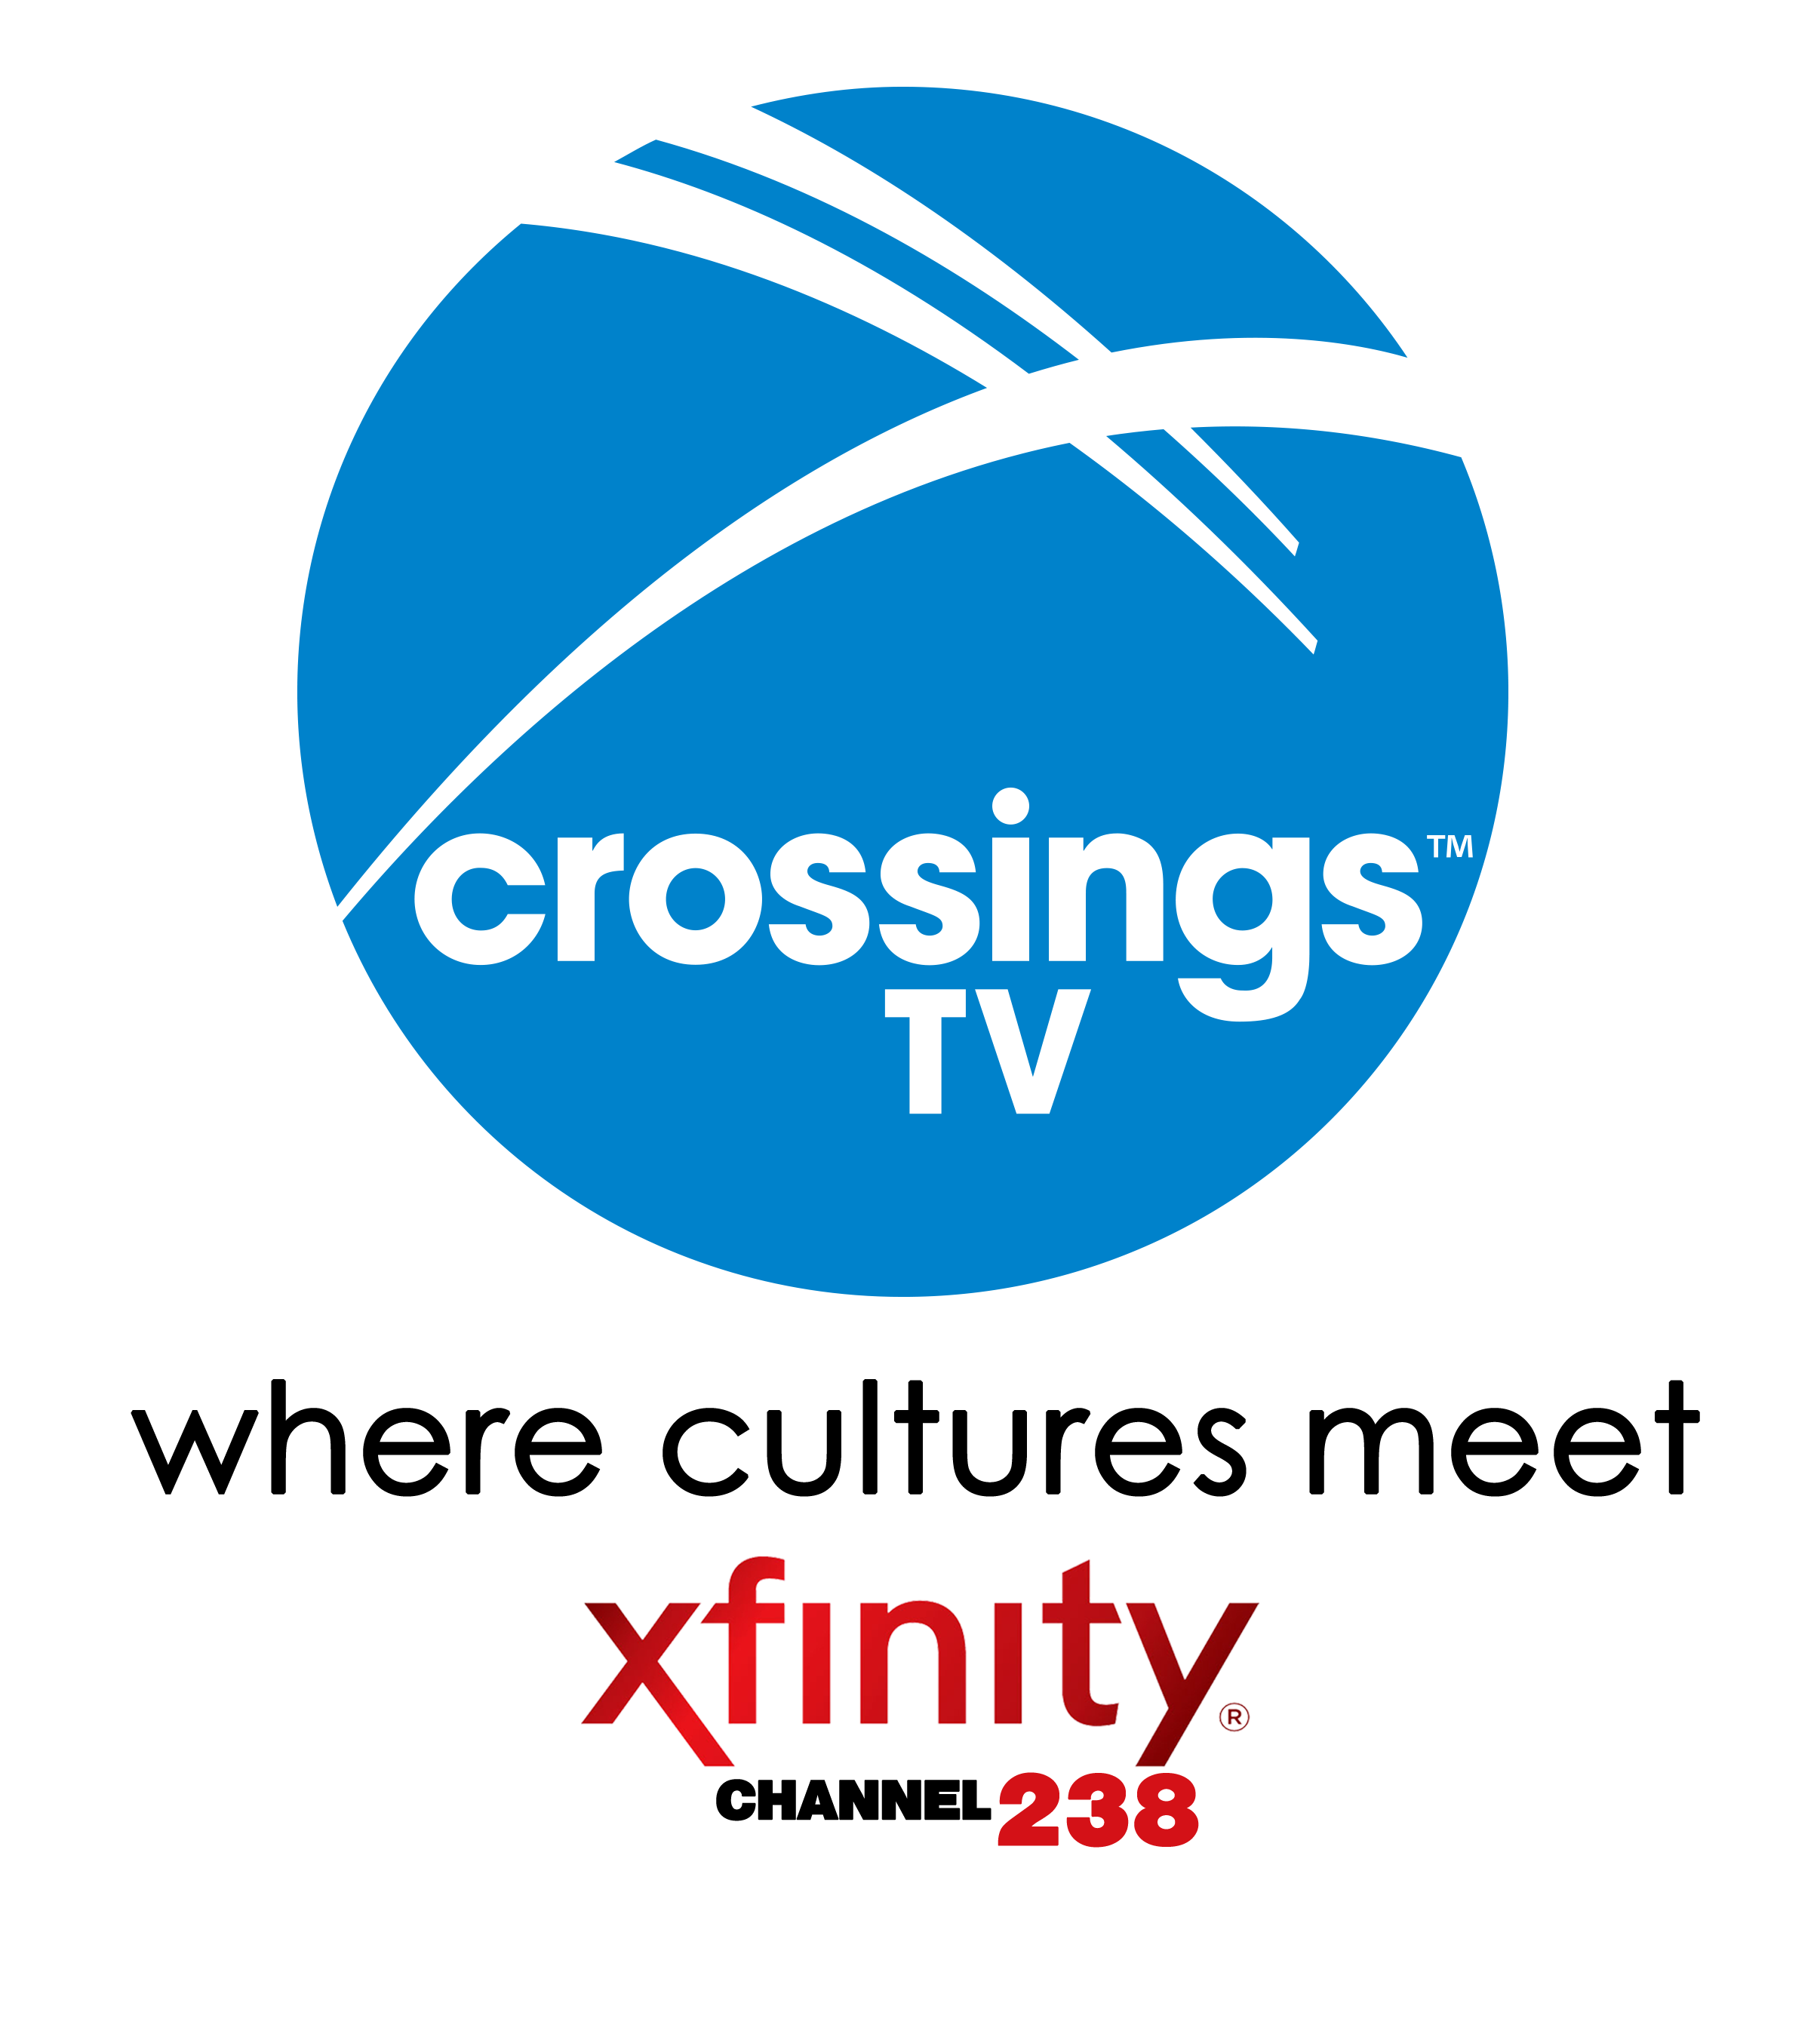 crossings tv xfinity png logo #6345